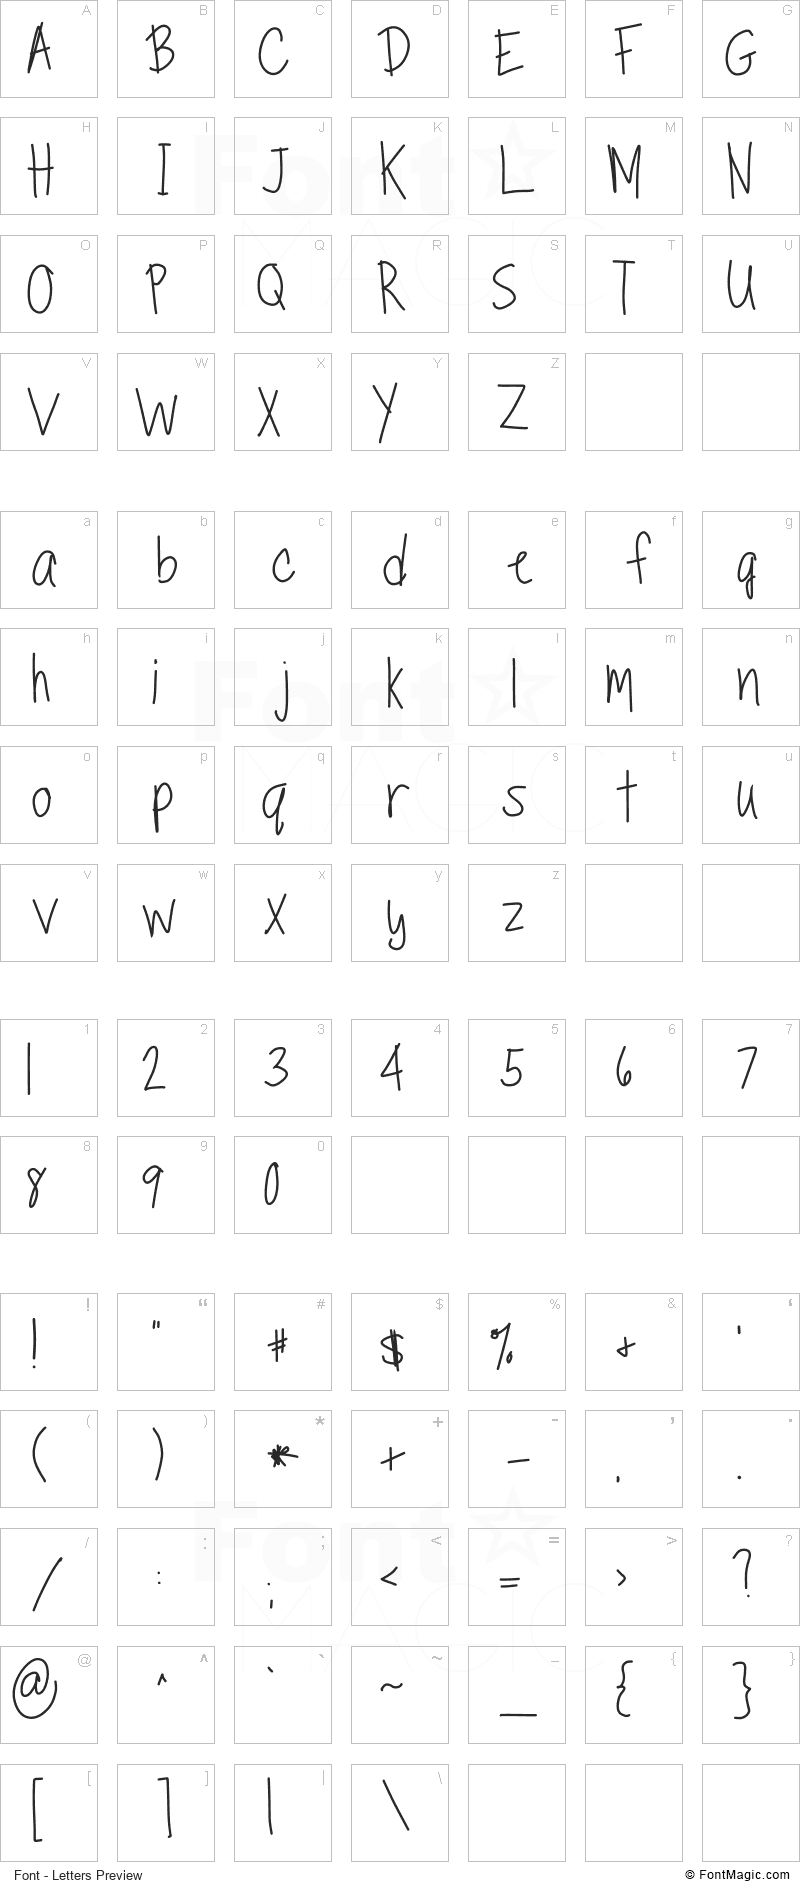 TippyToes Font - All Latters Preview Chart